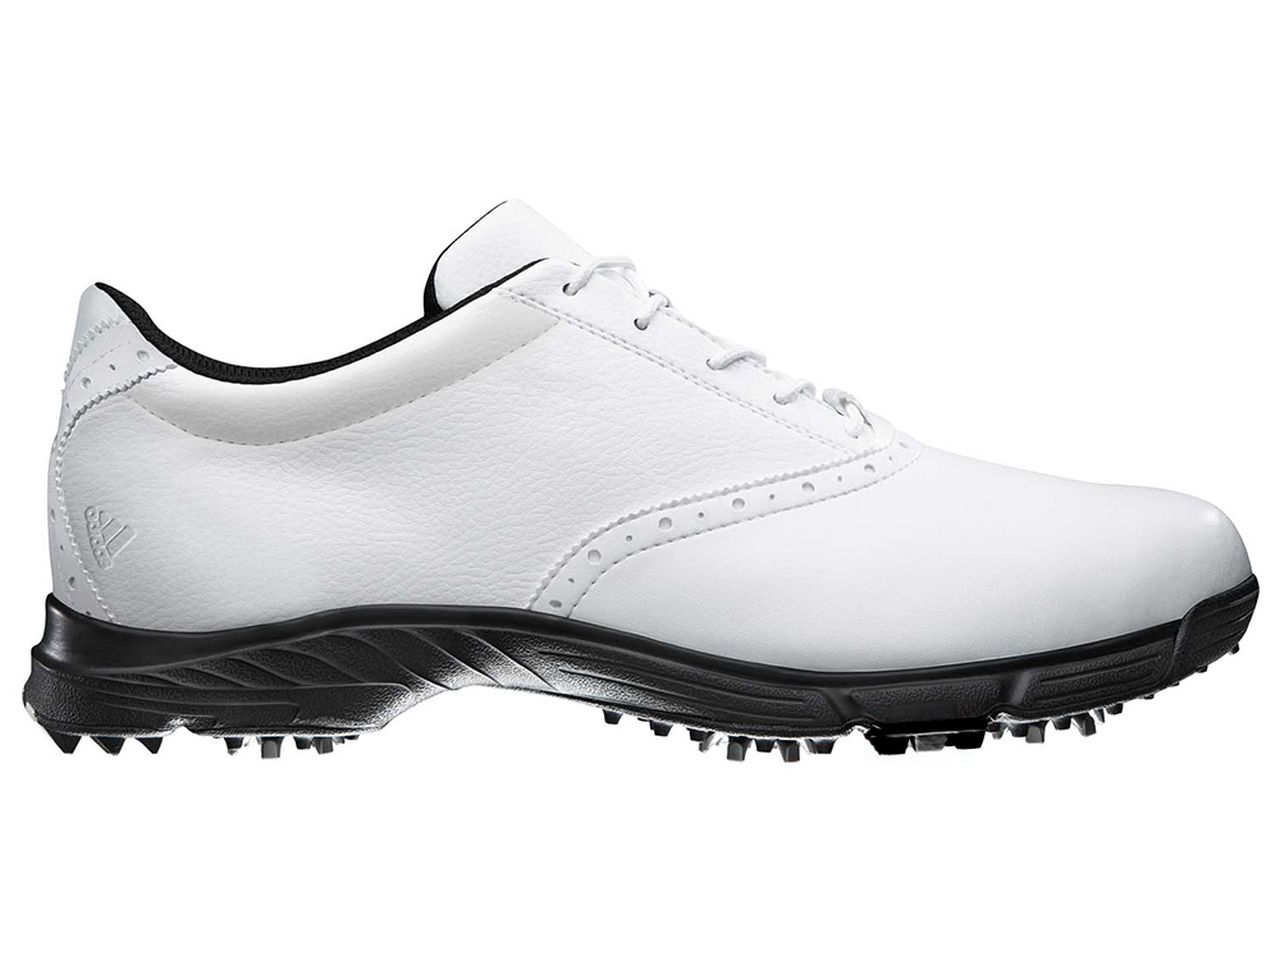 Pin by Industry News Engine on Industry News Engine in 2020 | Golf shoes,  Market risk, Global market